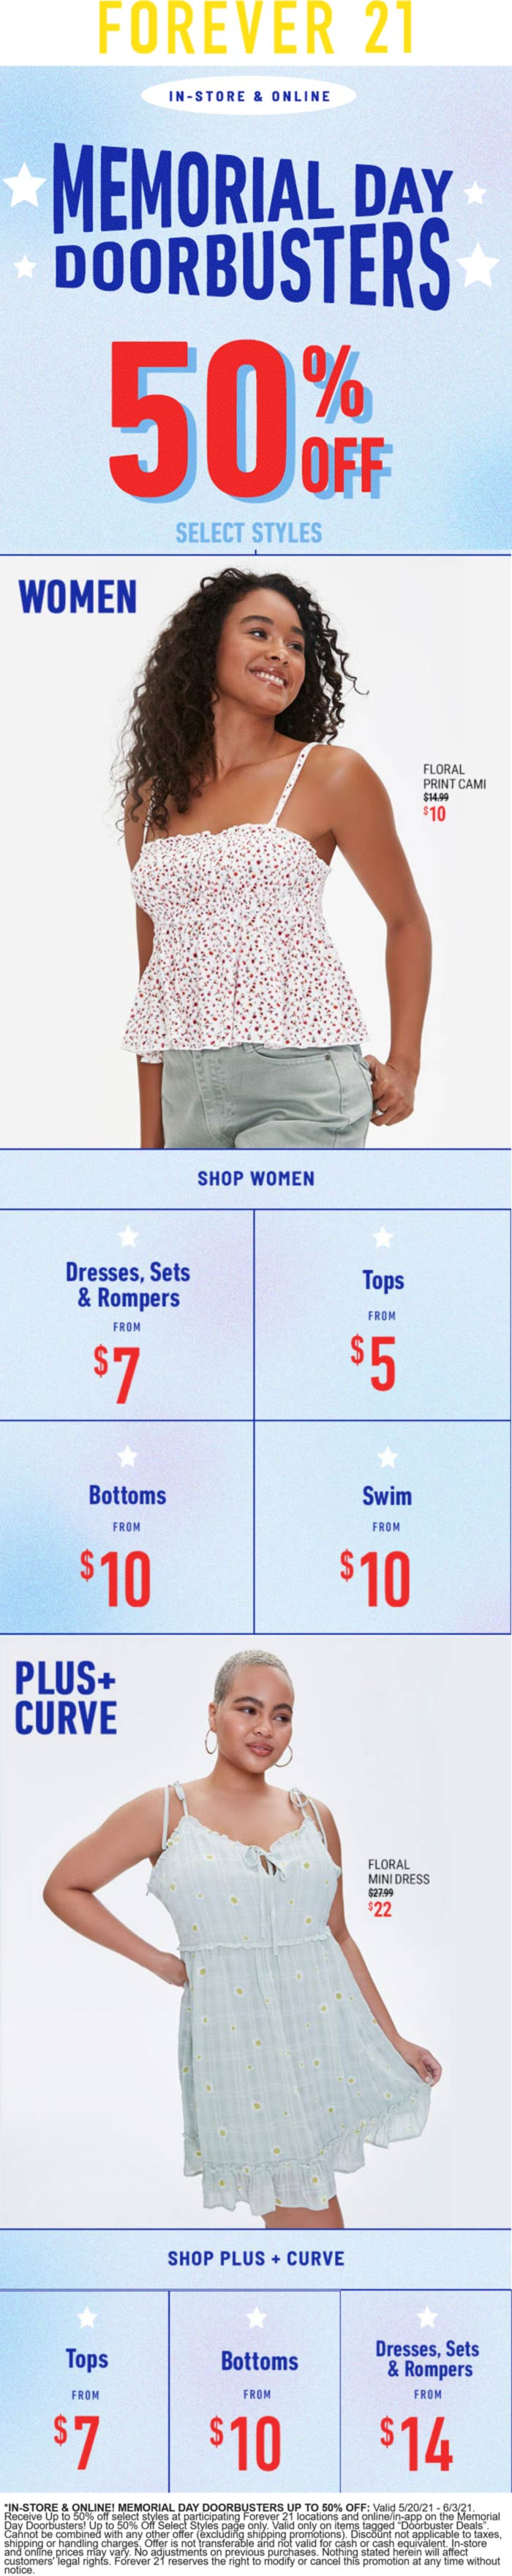 Forever 21 stores Coupon  Various 50% off doorbusters going on at Forever 21, ditto online #forever21